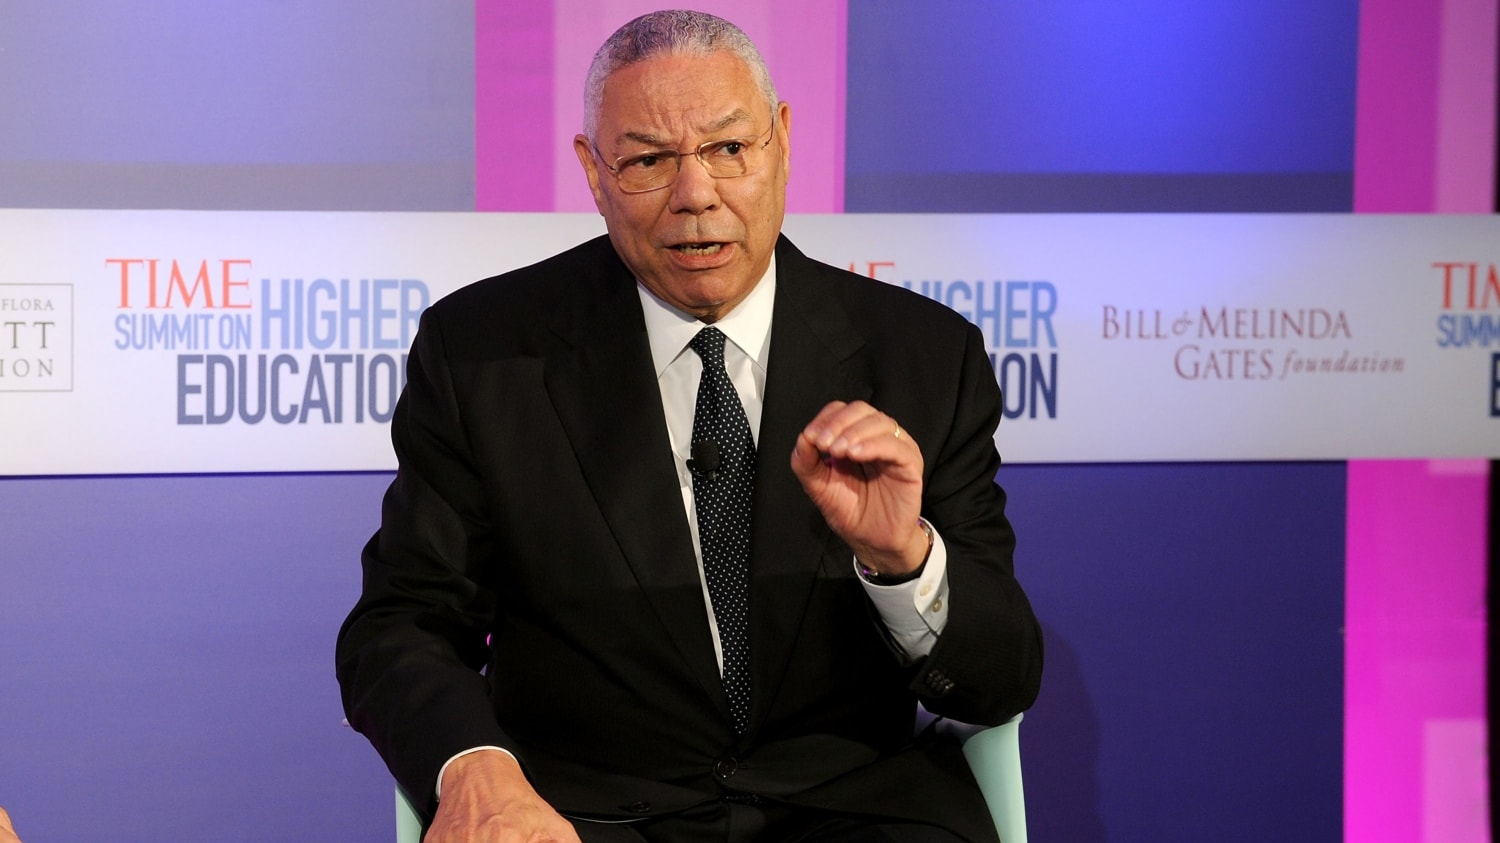 War vet with one leg rescues Gen. Colin Powell from a flat tire